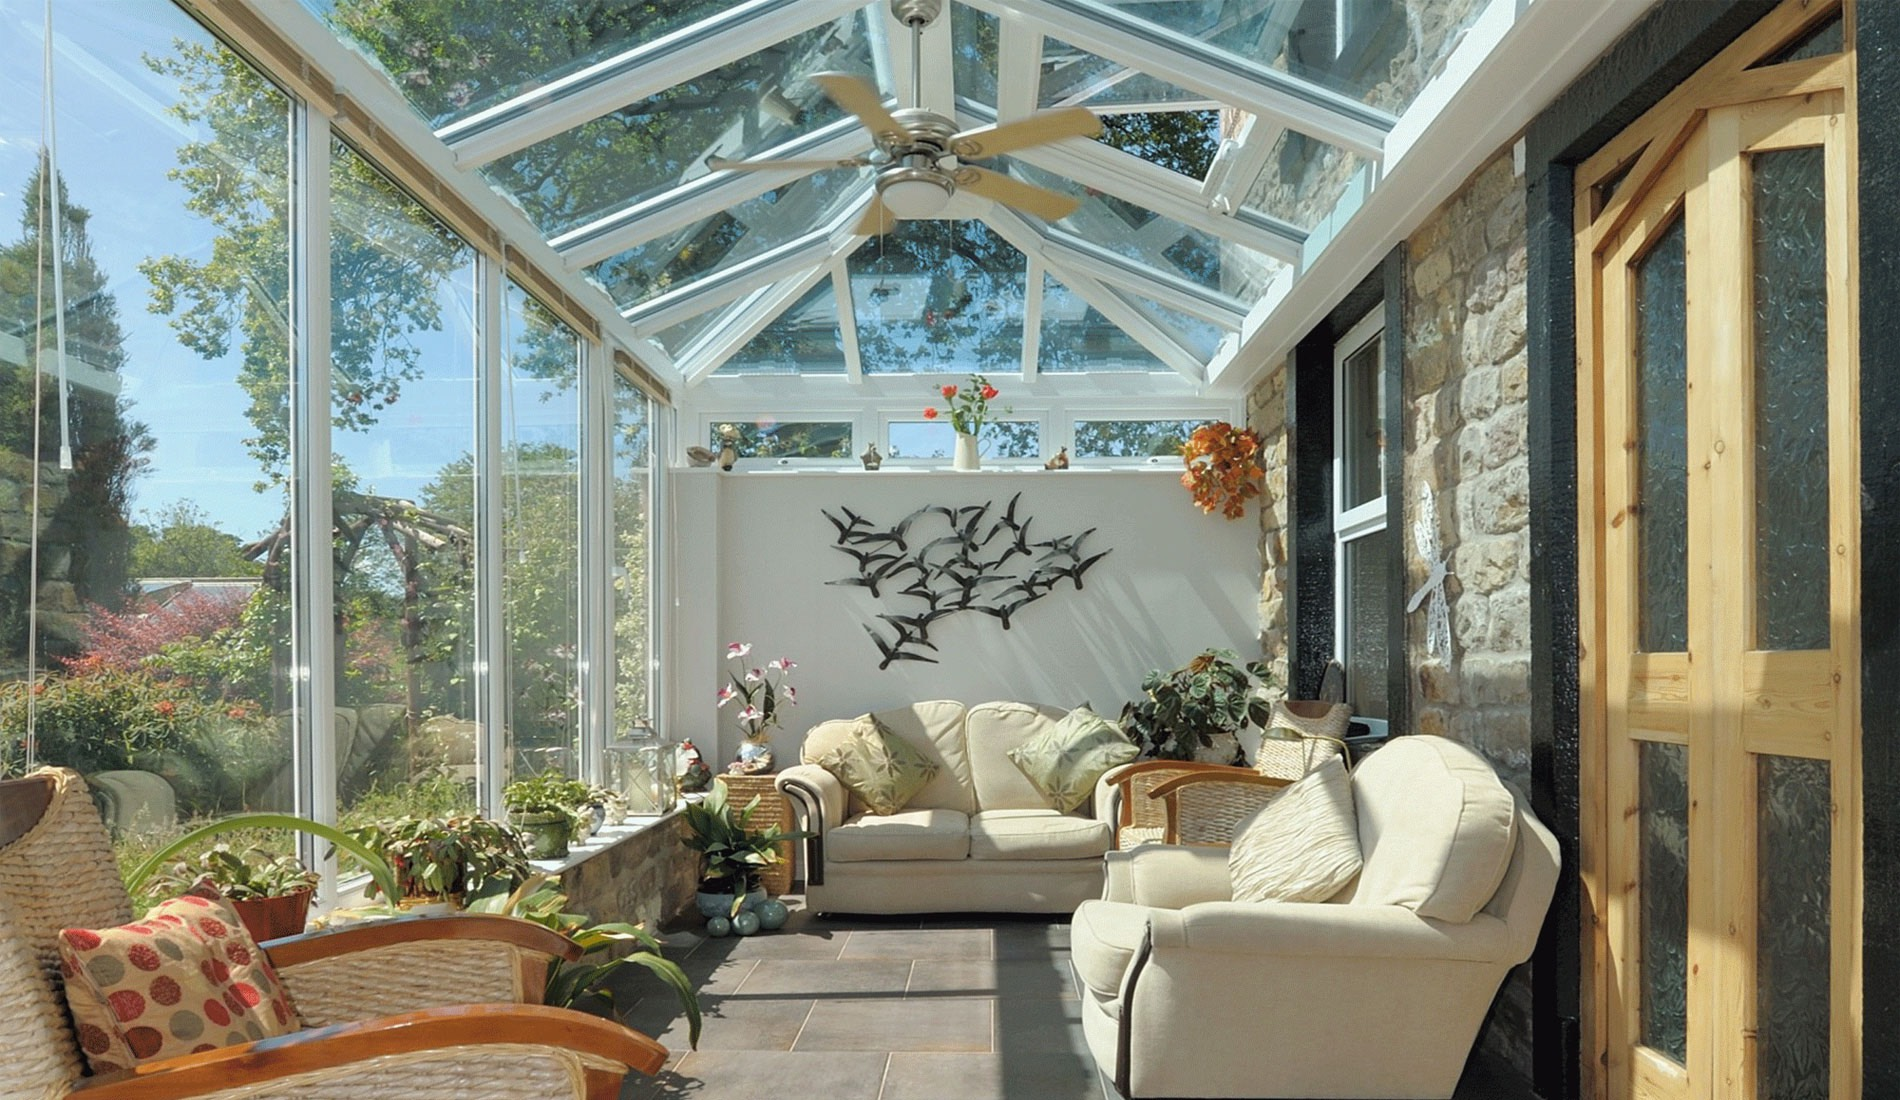 Conservatories Canford Cliffs prices